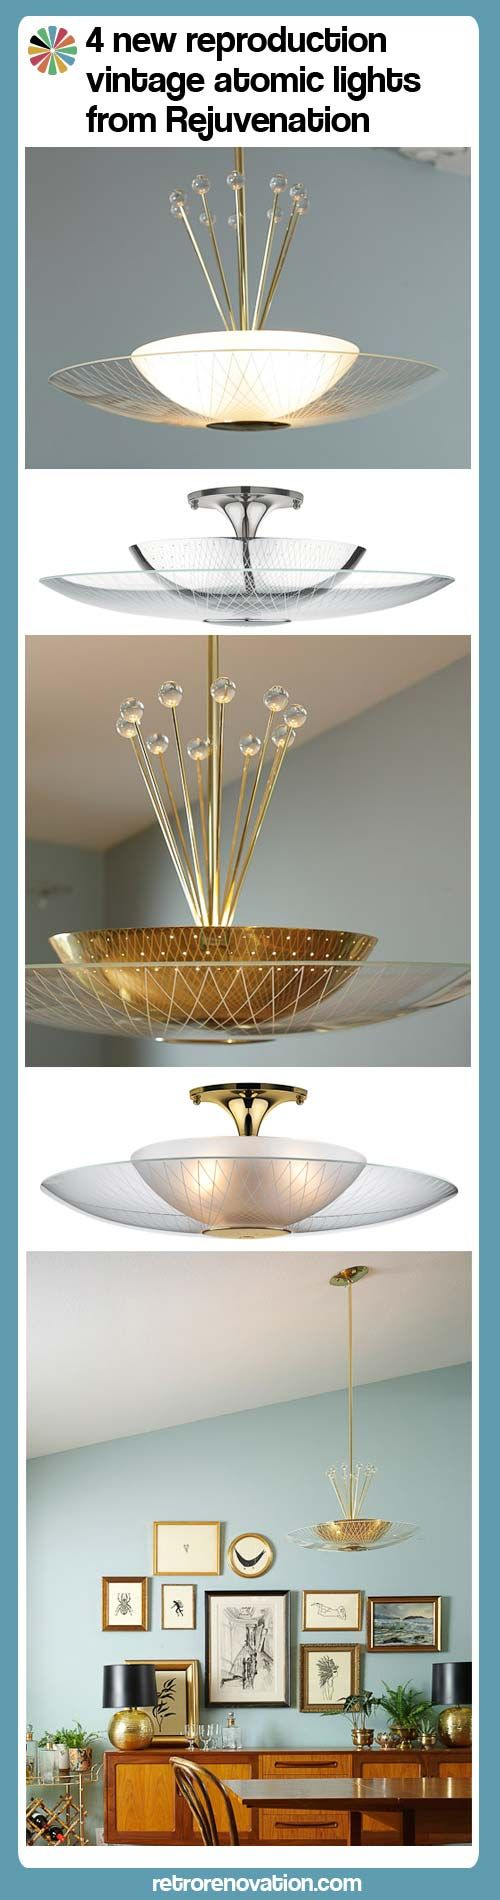 Breaking News: 4 new reproduction vintage atomic lights from Rejuvenation — Retro Renovation